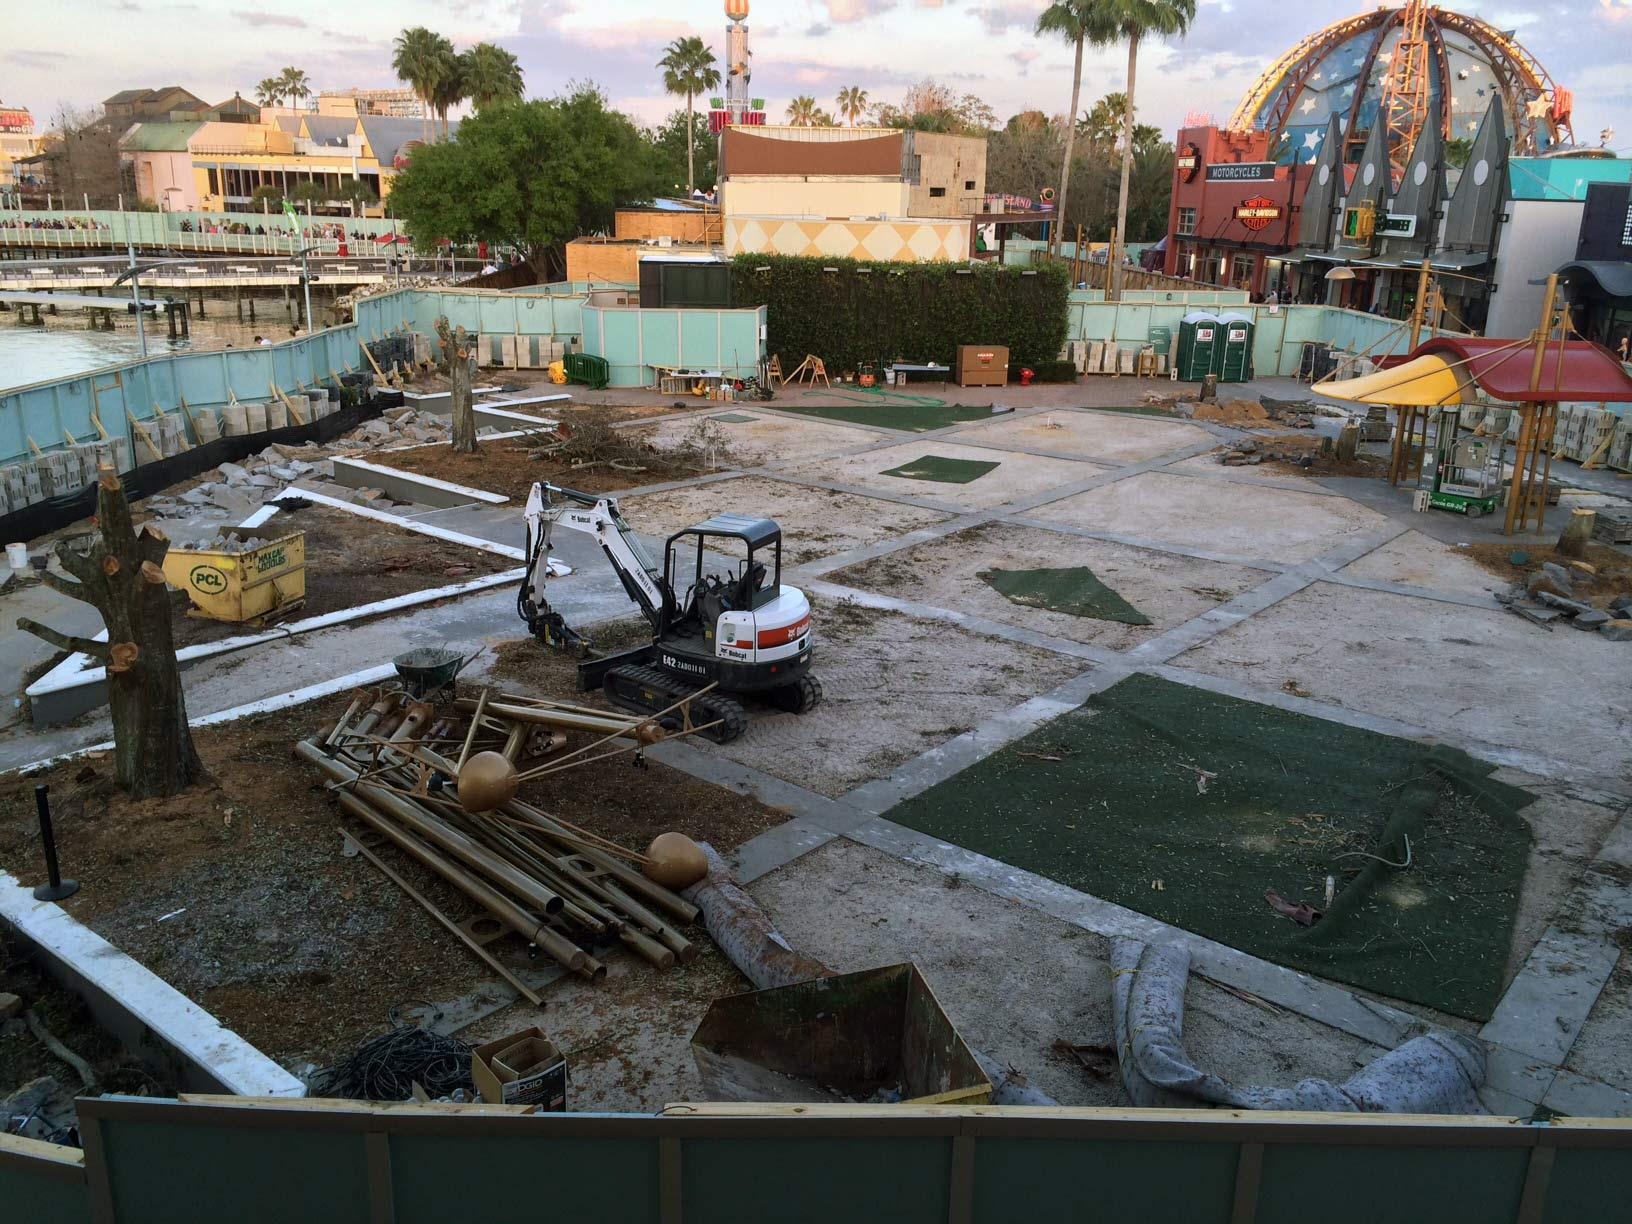 Food Truck Park construction site